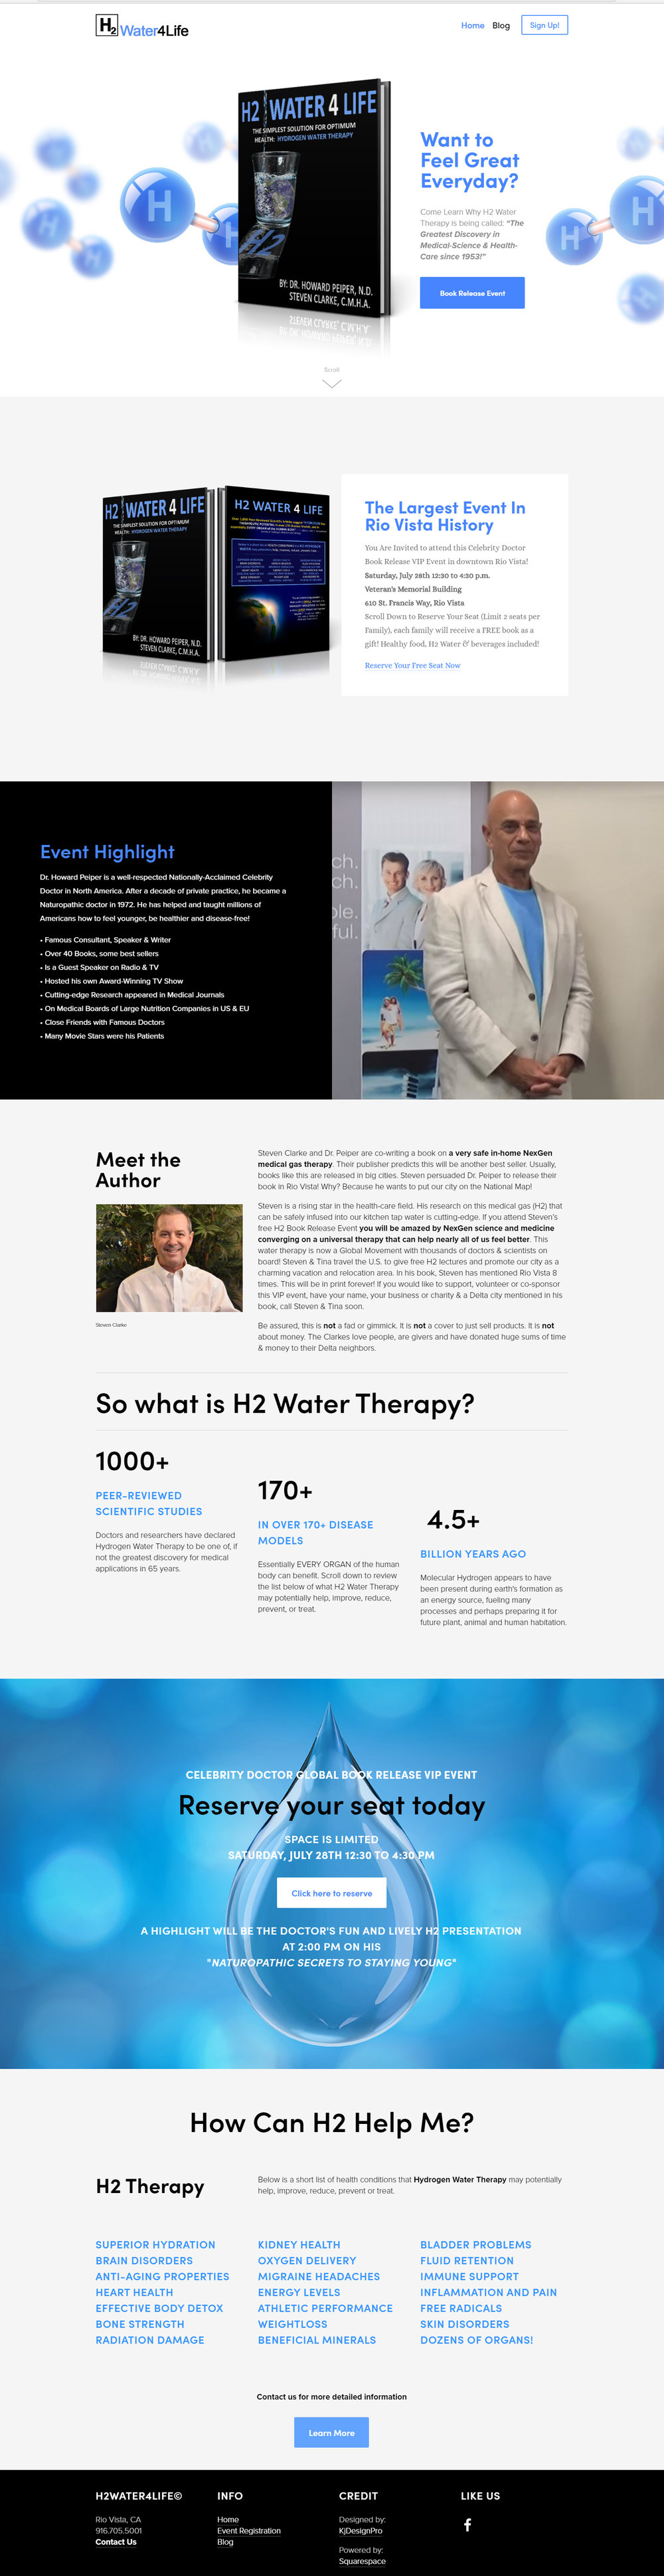 Non-Profit - H2Water4Life Website